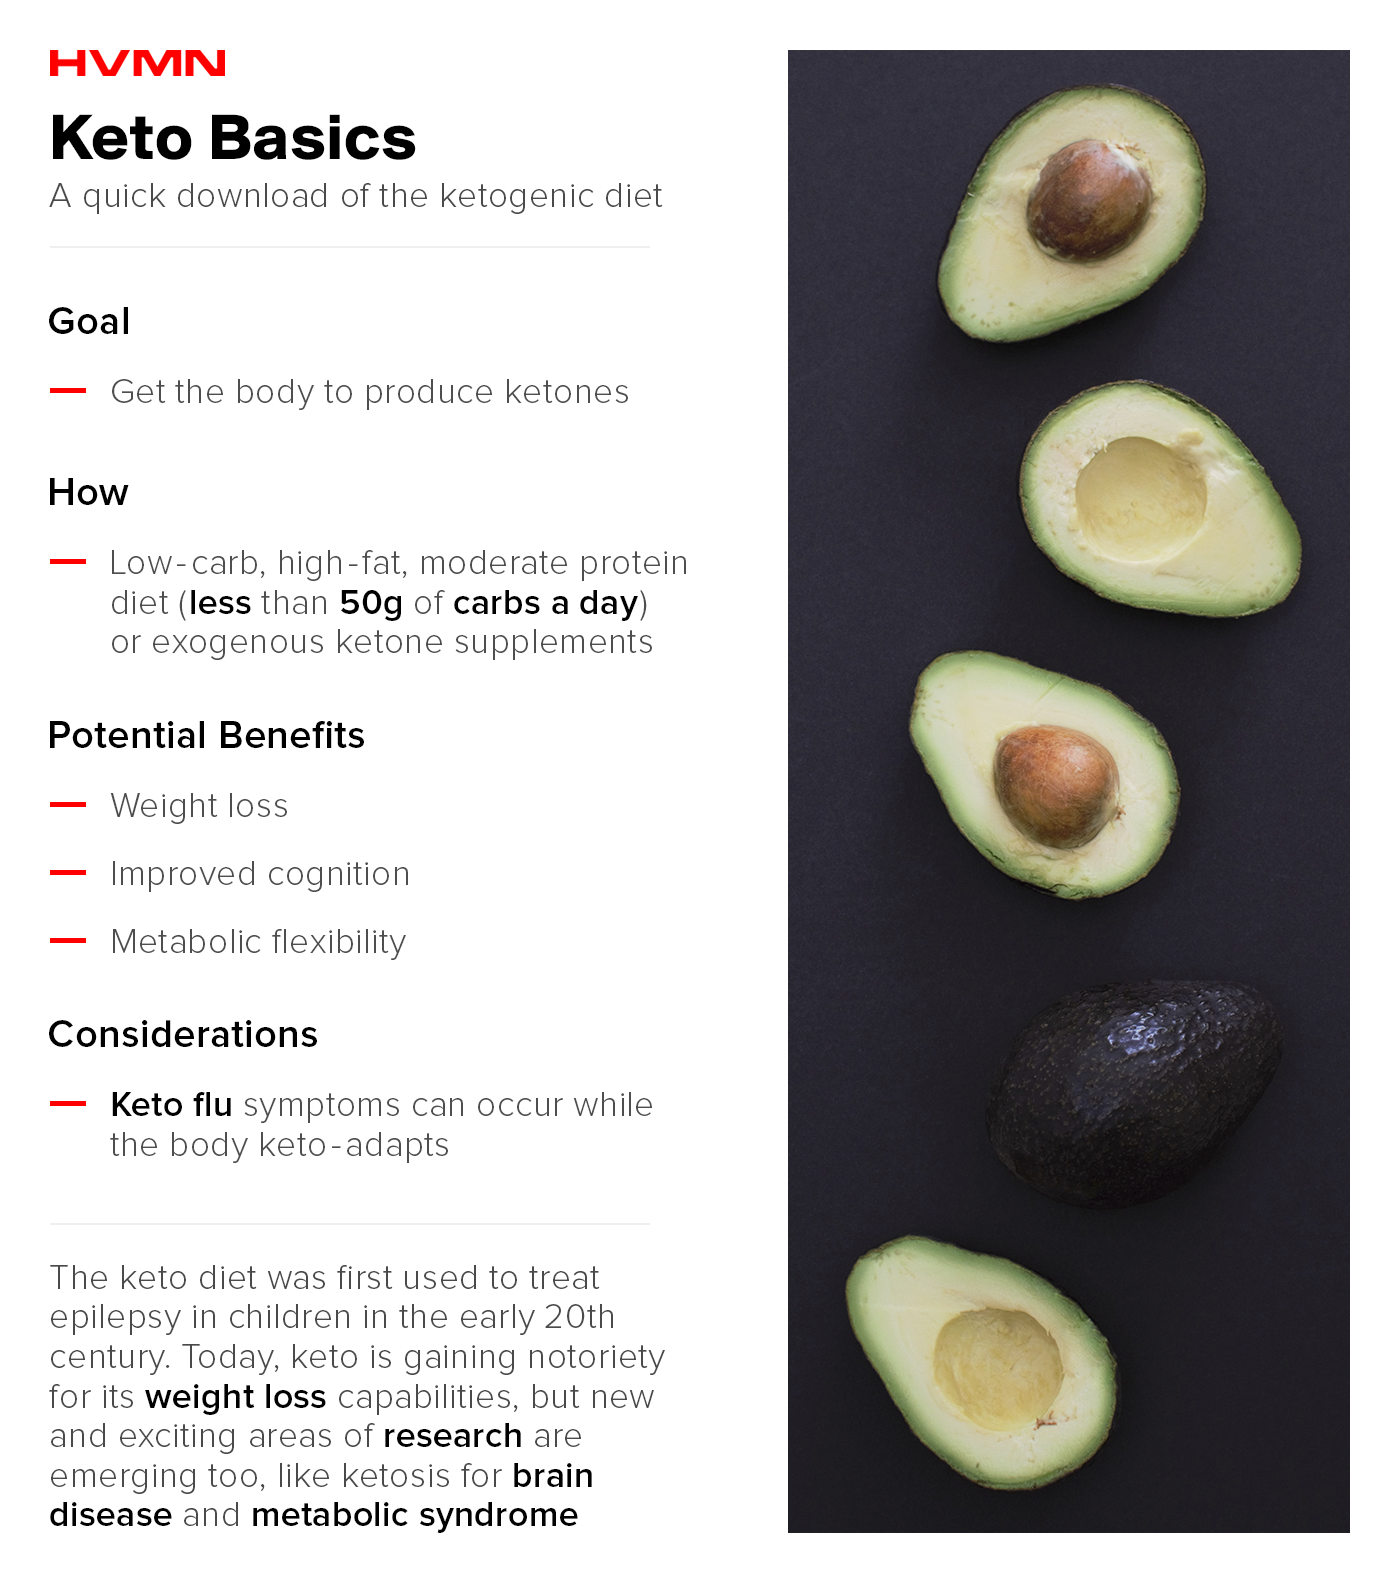 An image of avocados cut in half, showing the basics of keto